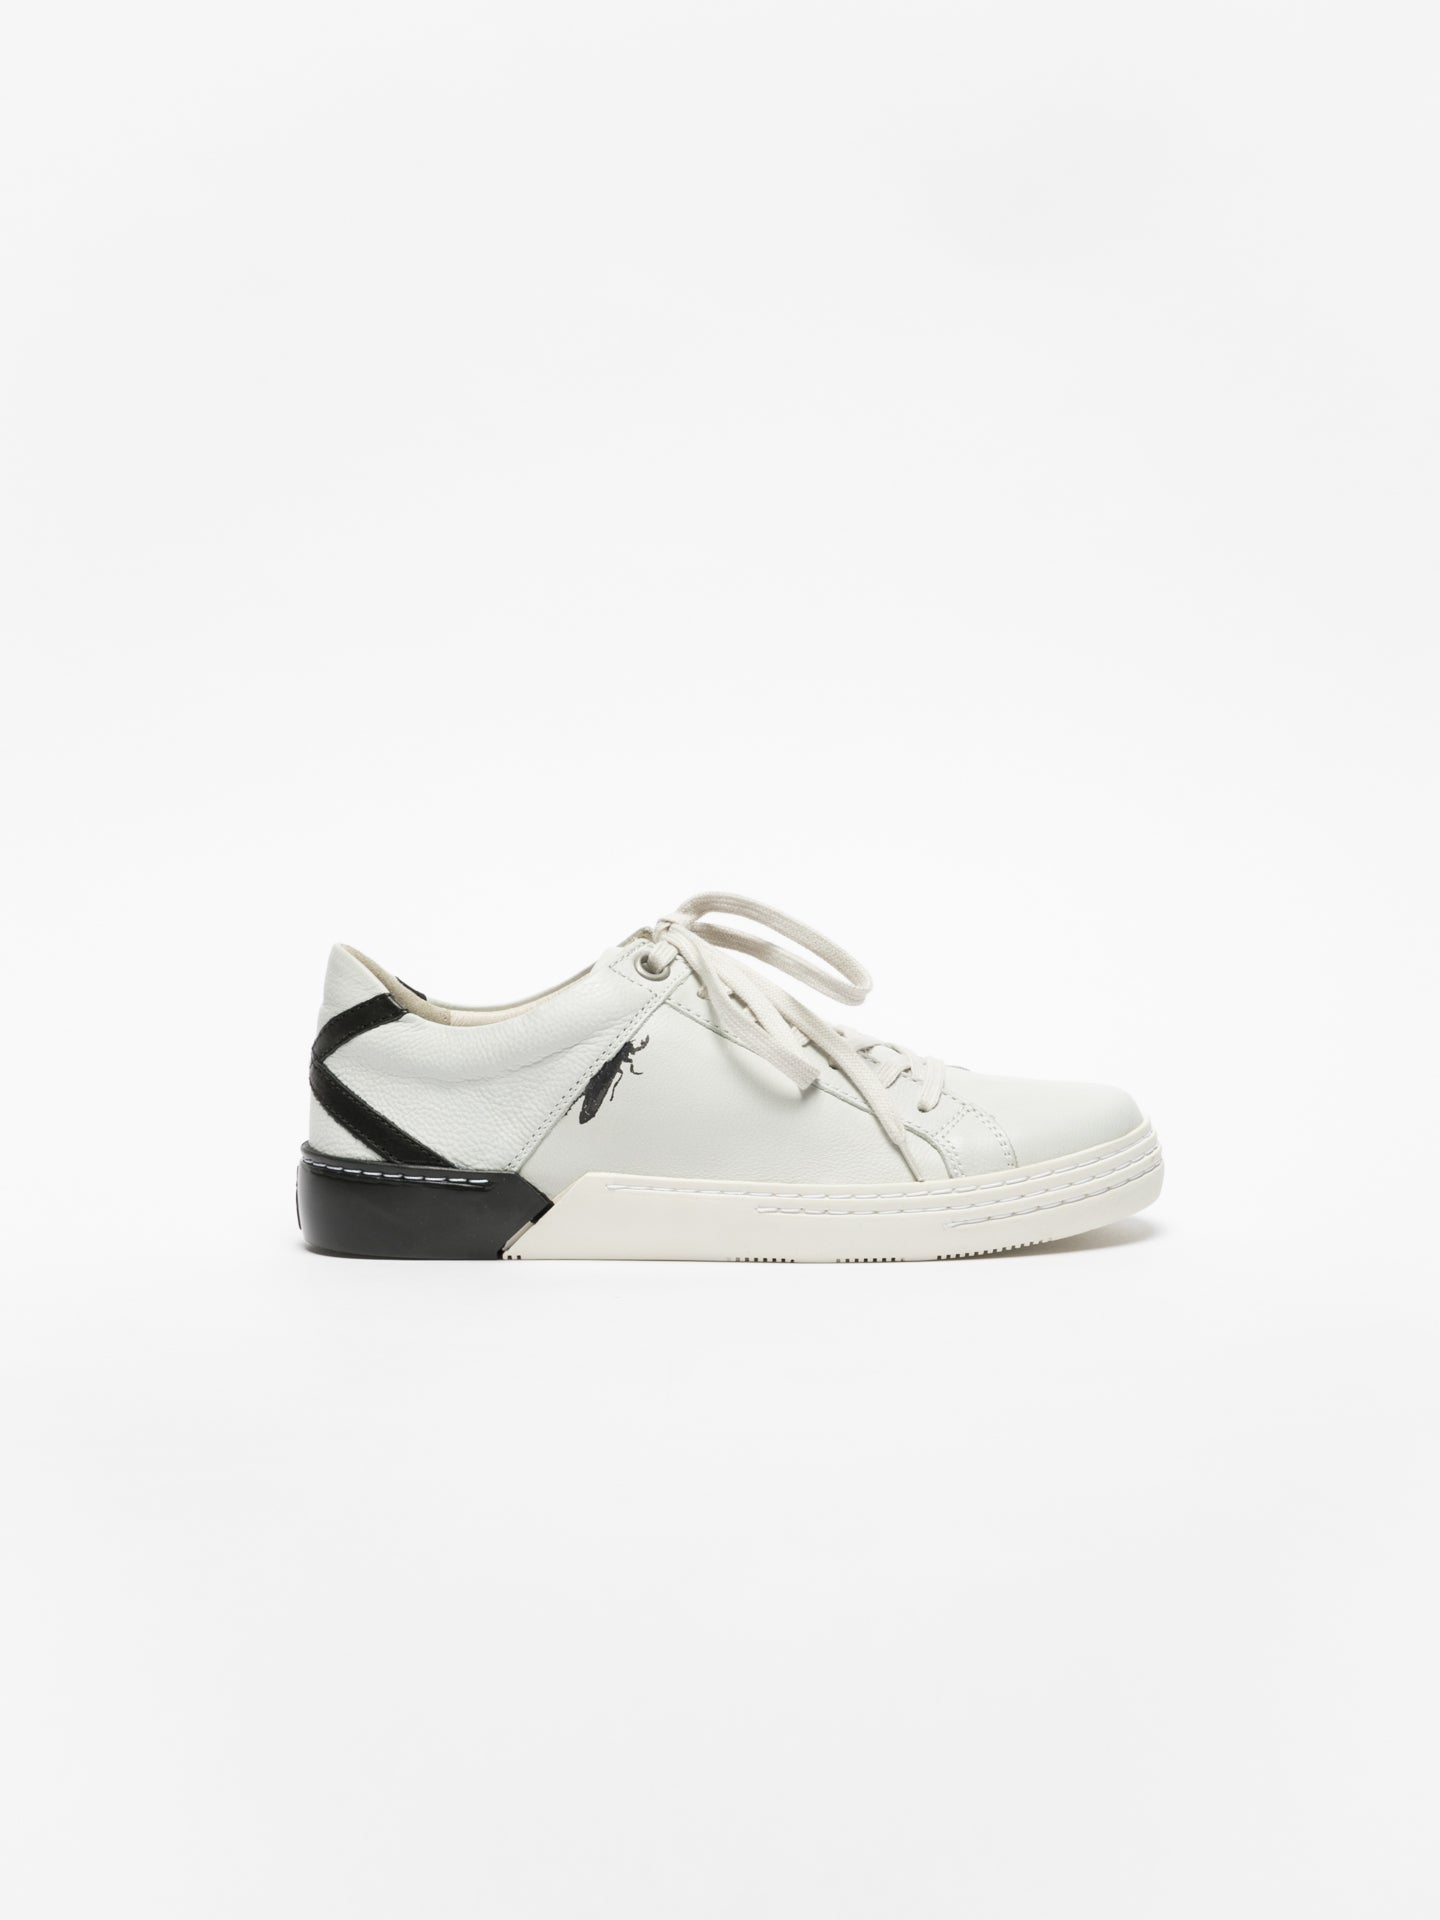 Fly London Zapatillas con Cordones en color Blanco